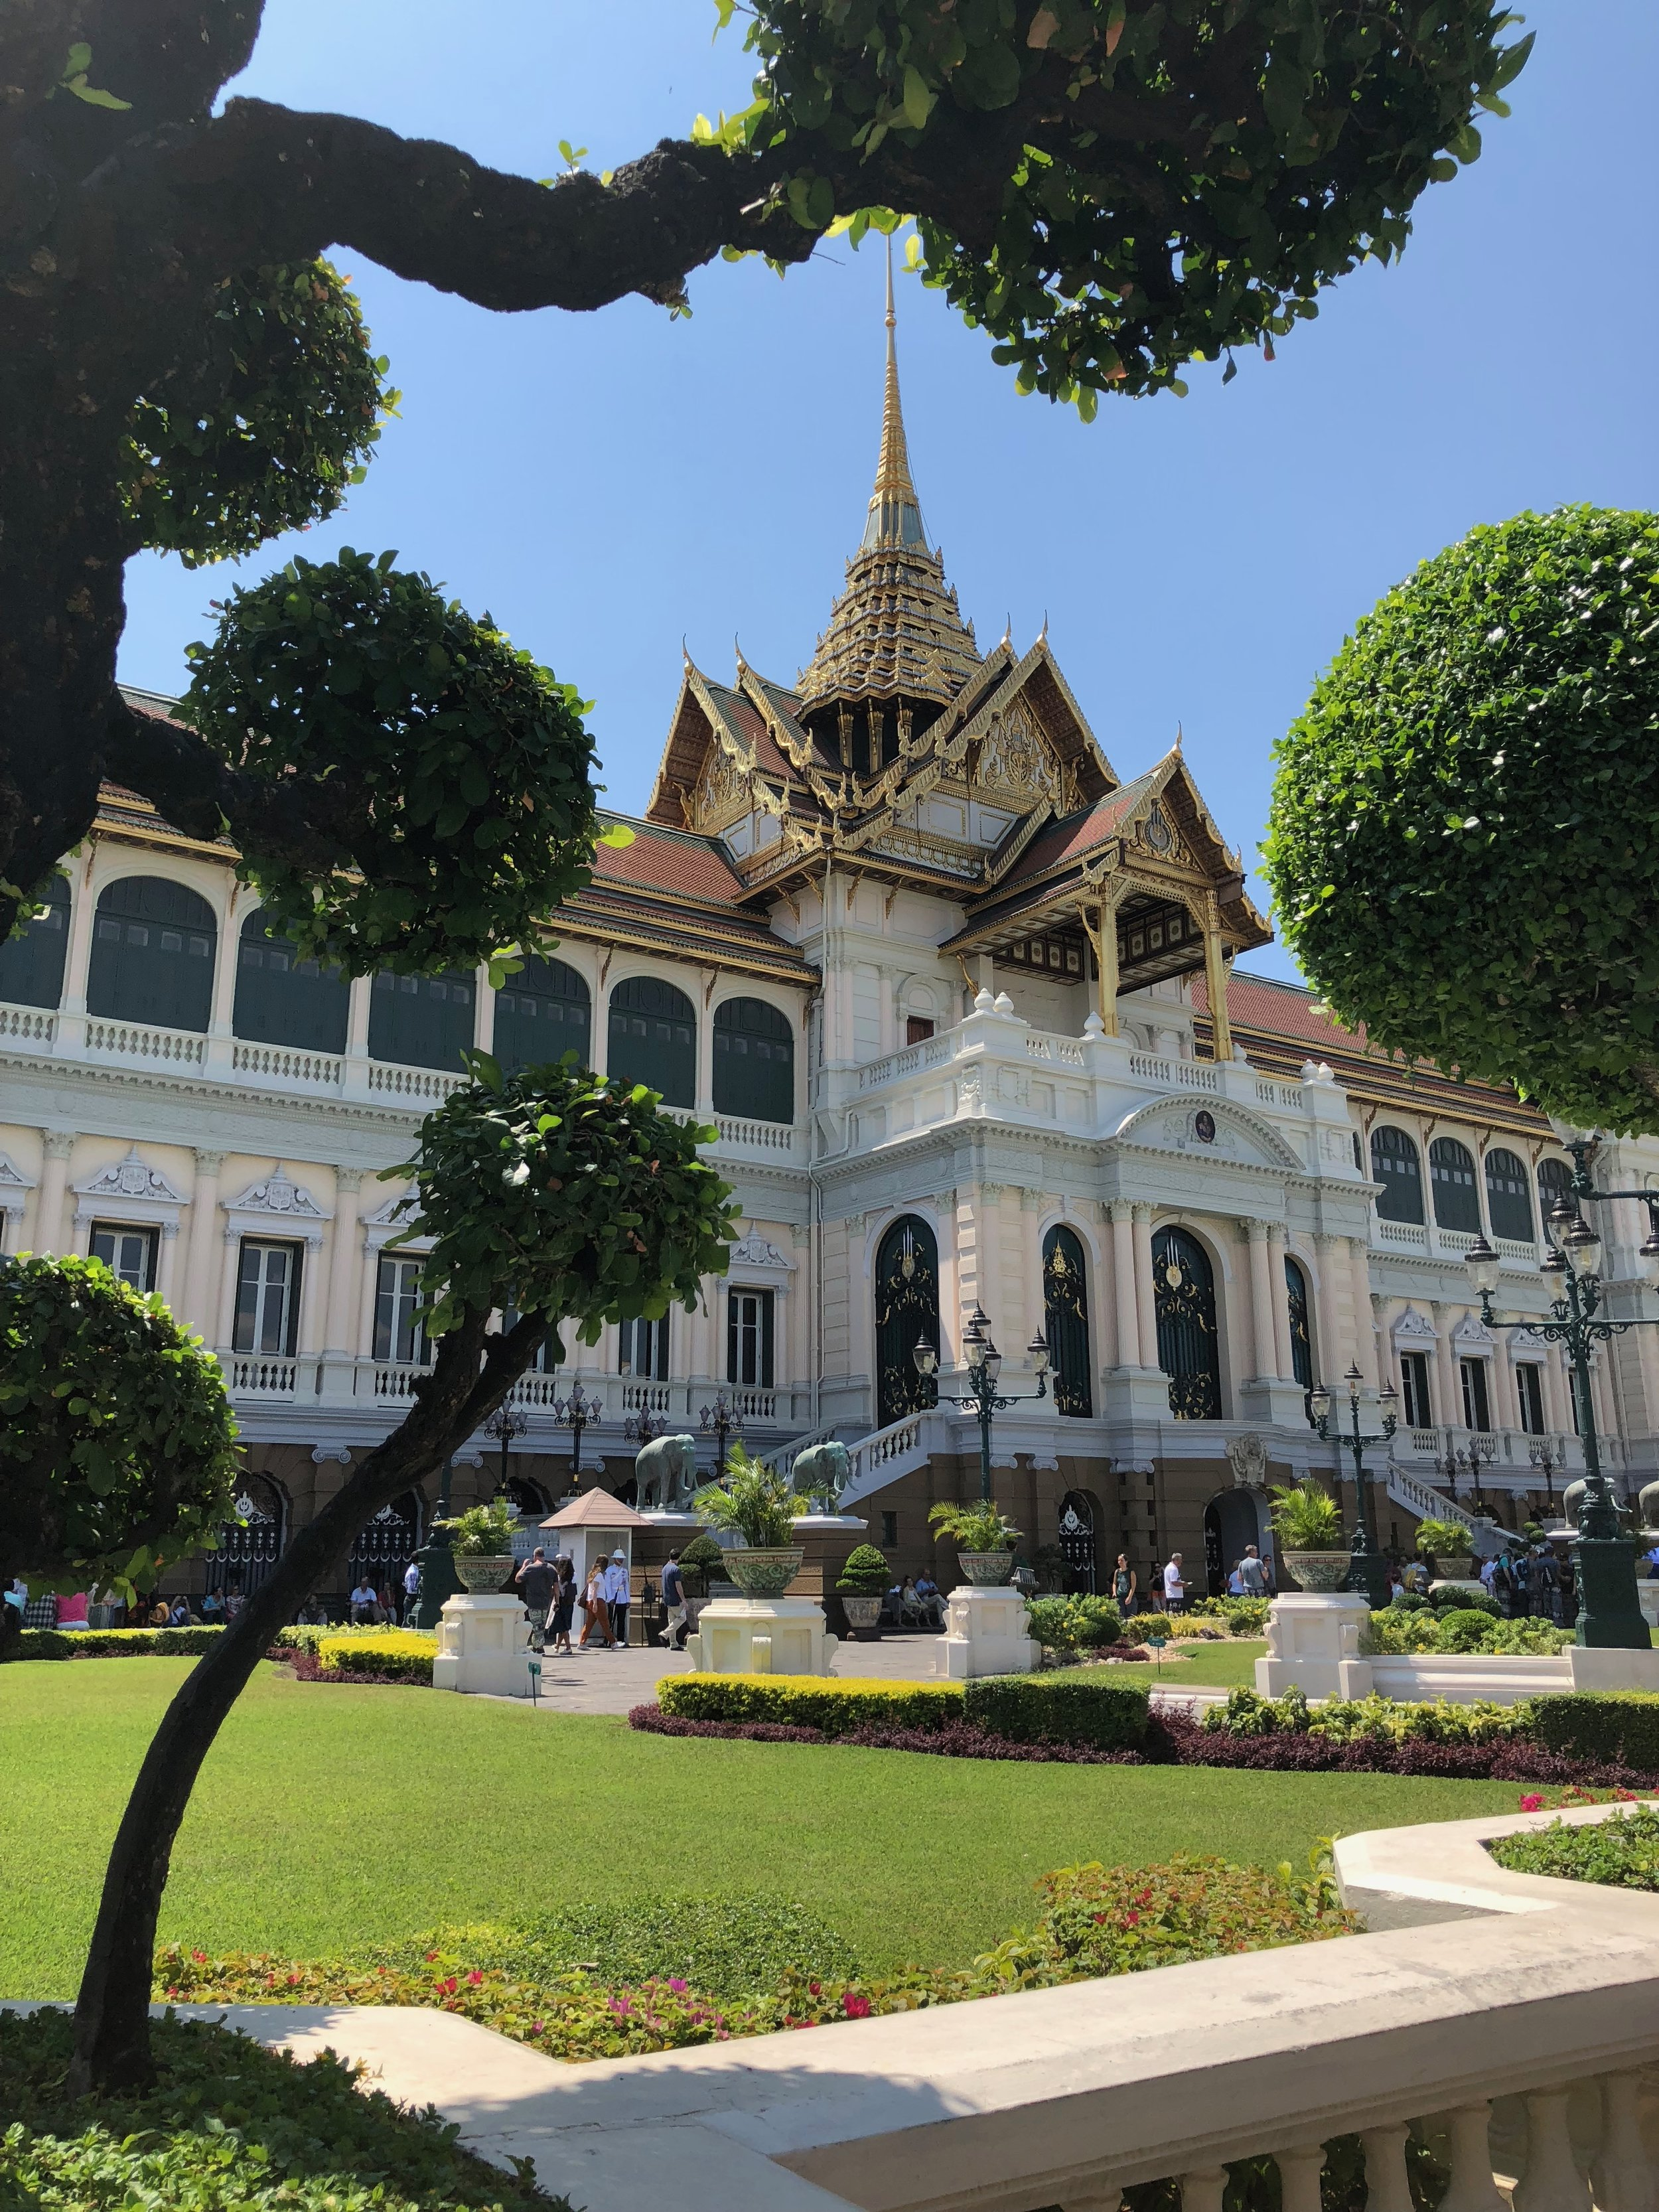 A look at the royal palace grounds—with some more beautiful spires.